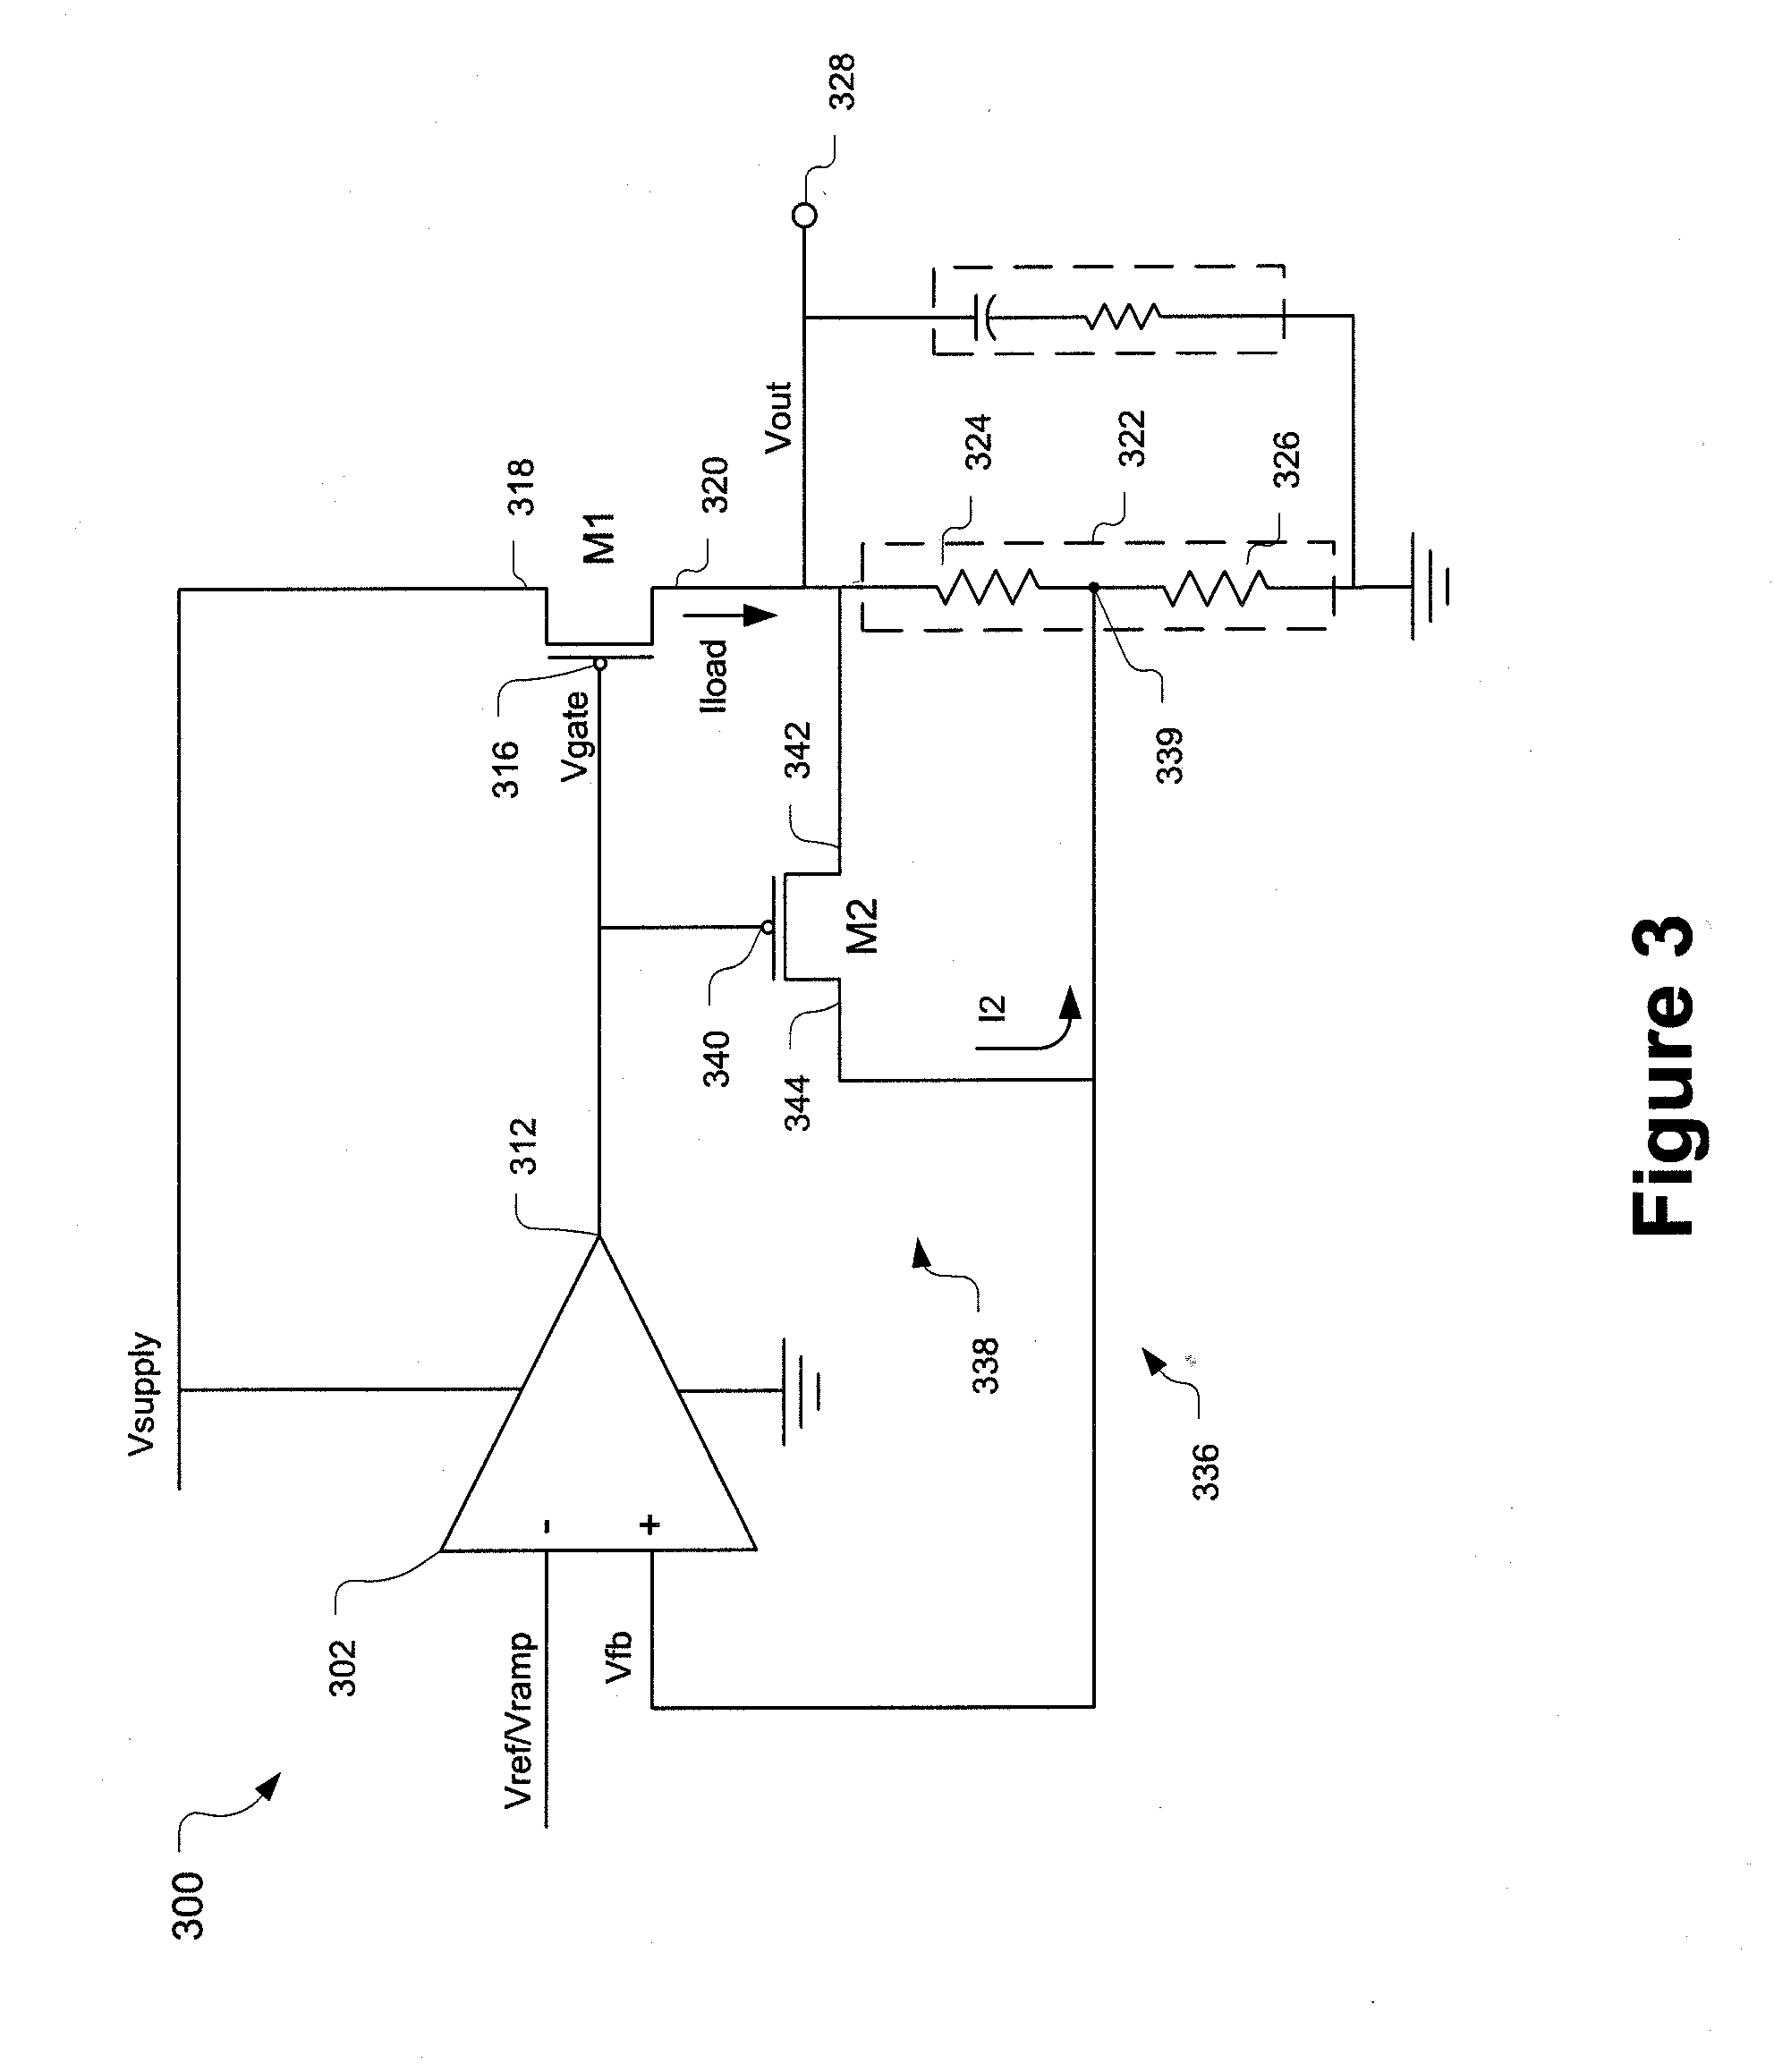 Patente Us20110248693 Voltage Regulator With Control Loop For Low Drop Out Ldo Using Discrete Semiconductors Patent Drawing